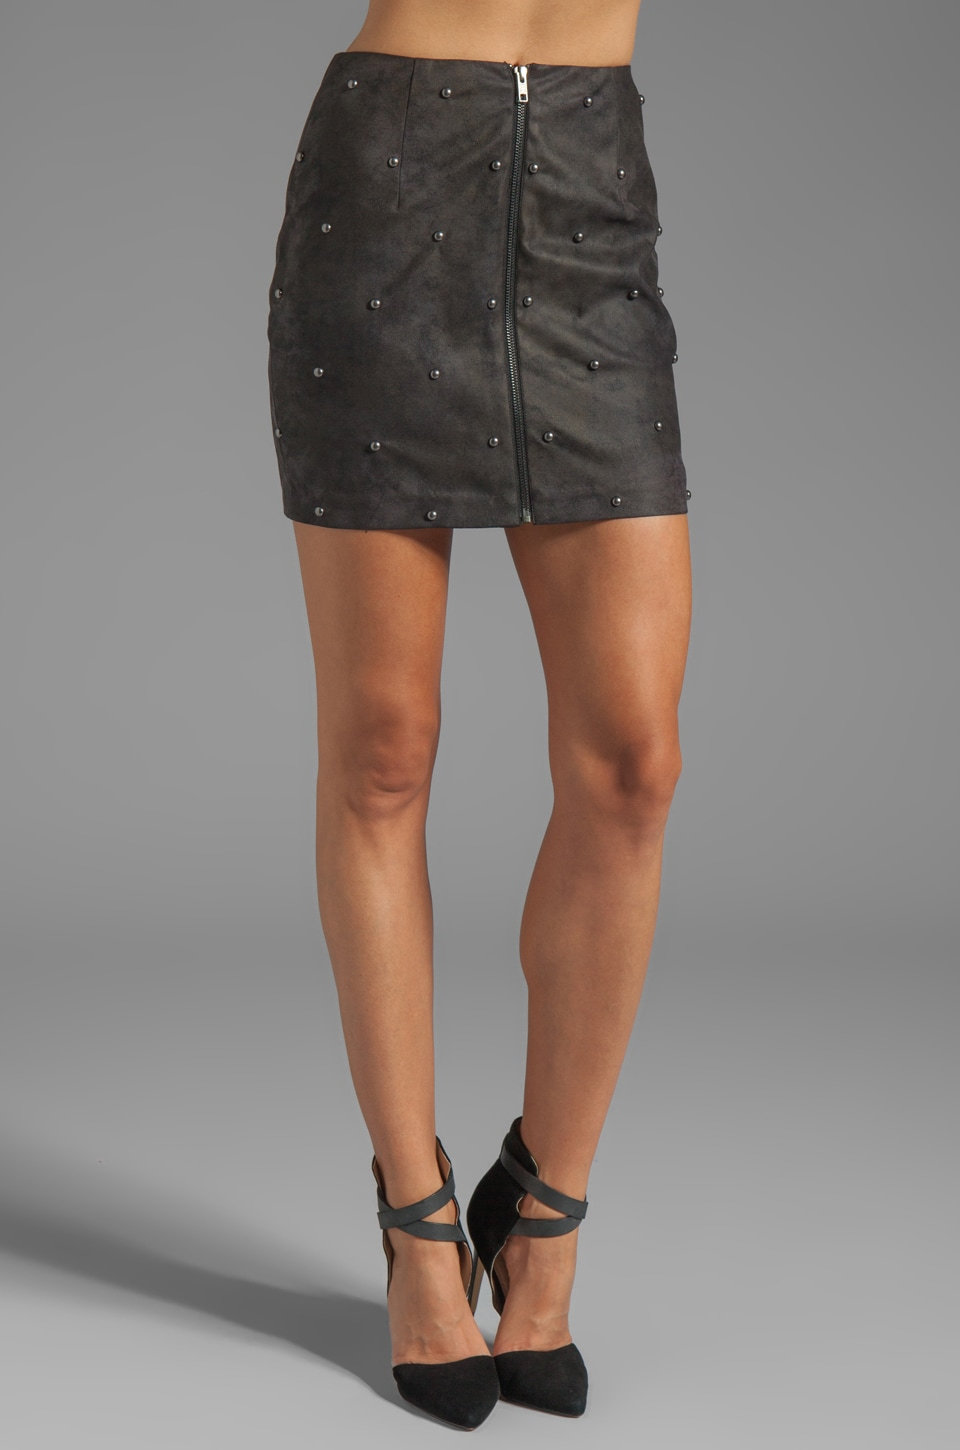 Ladakh Rita Stud Skirt in Black